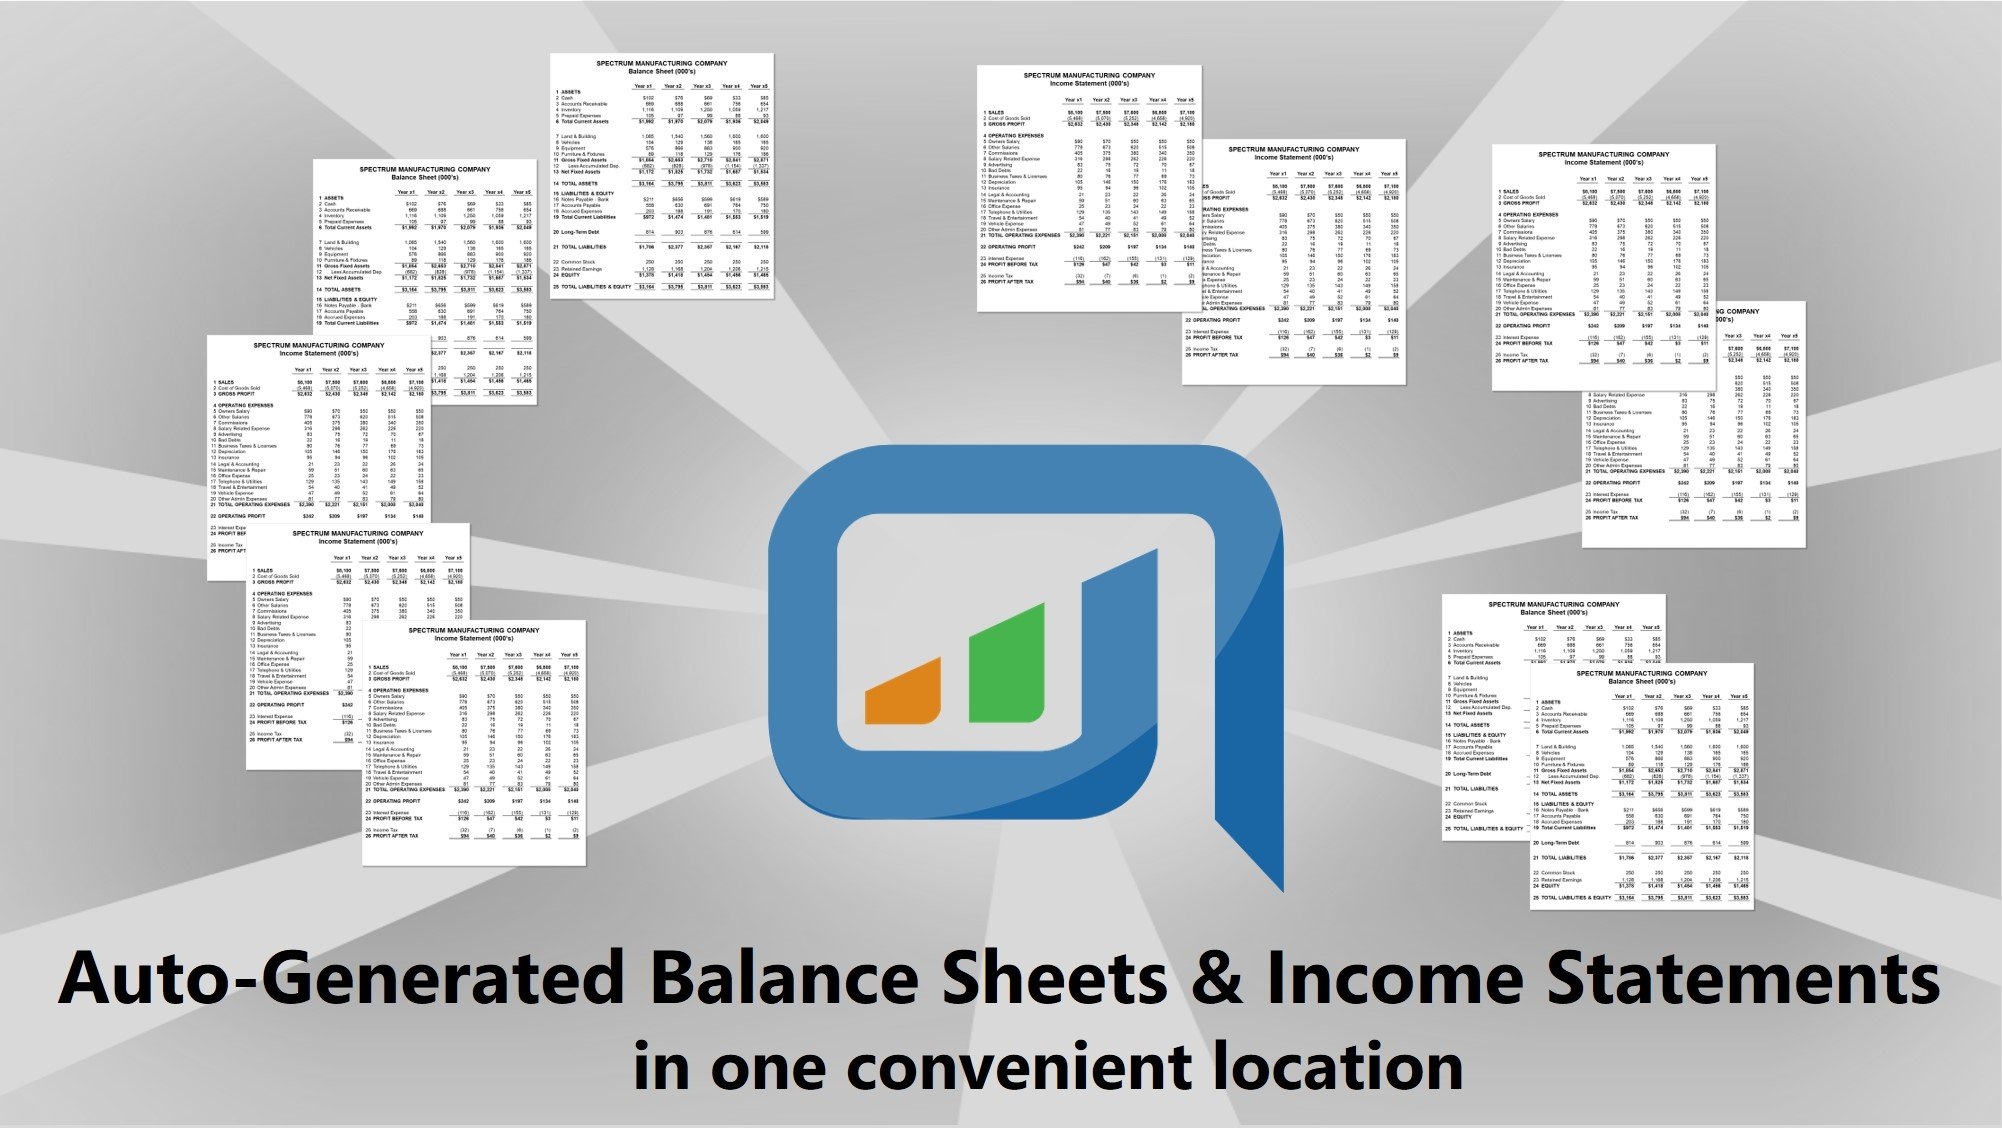 Auto-generated balance sheets and income statement